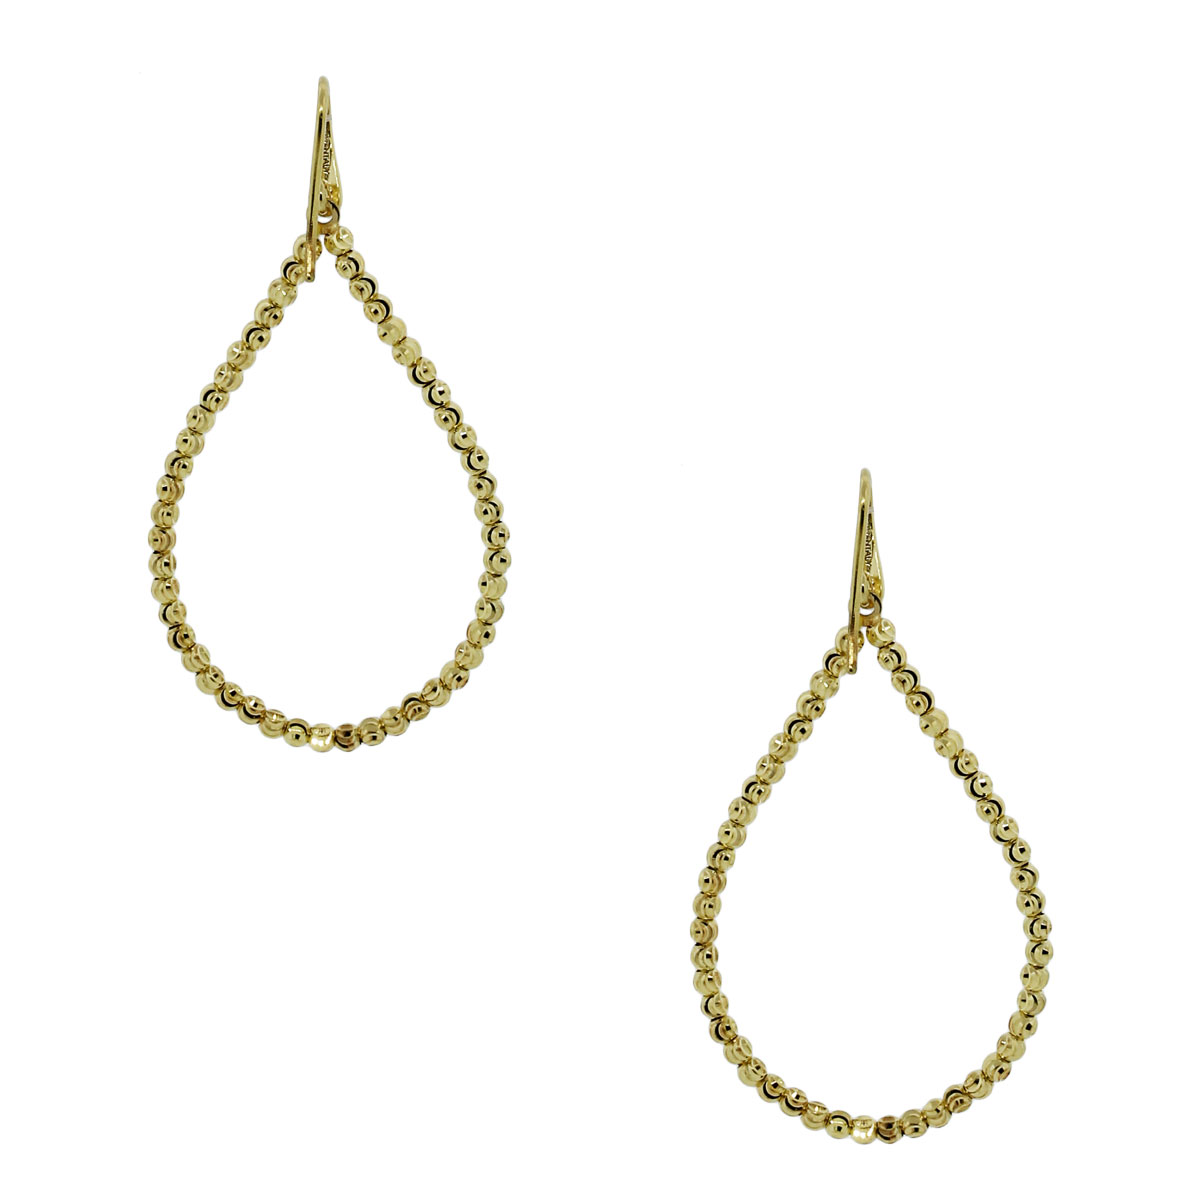 Officina Bernardi Tear Drop Earrings